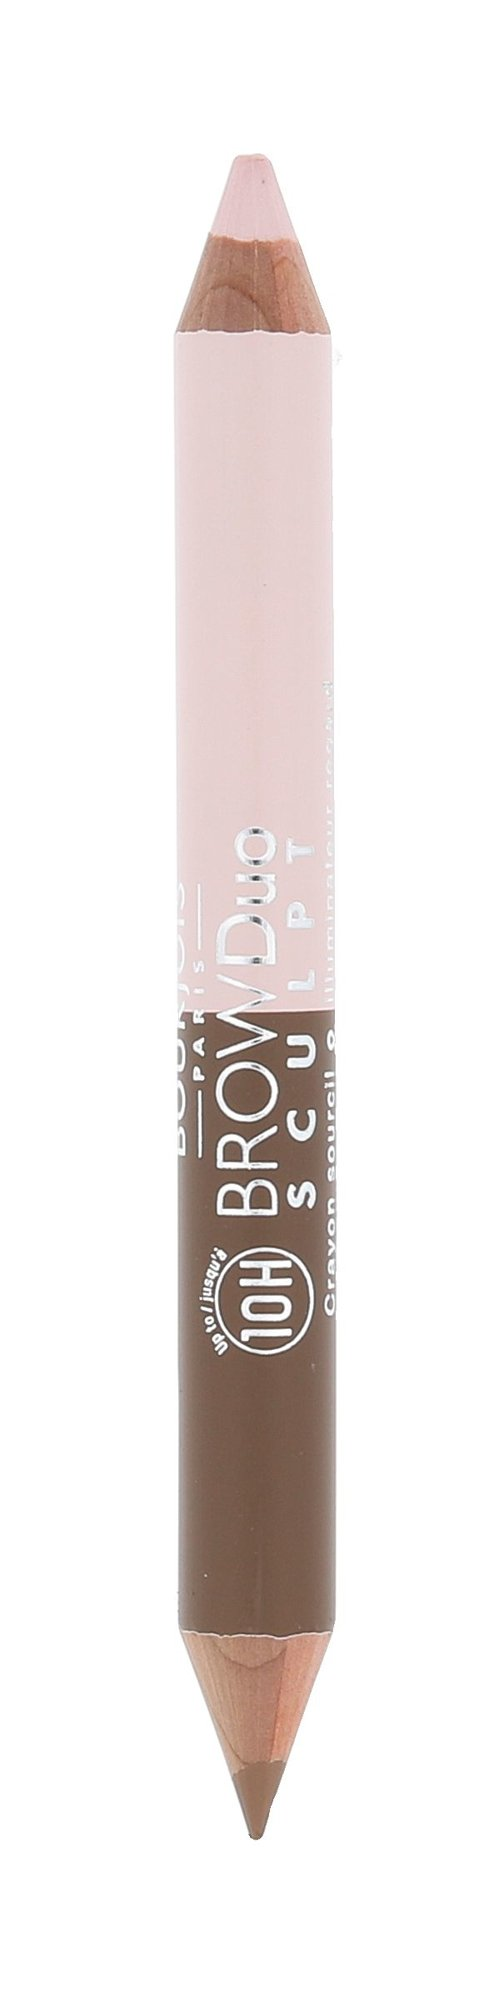 BOURJOIS Paris Brow Duo Sculpt Cosmetic 3ml 21 Blond